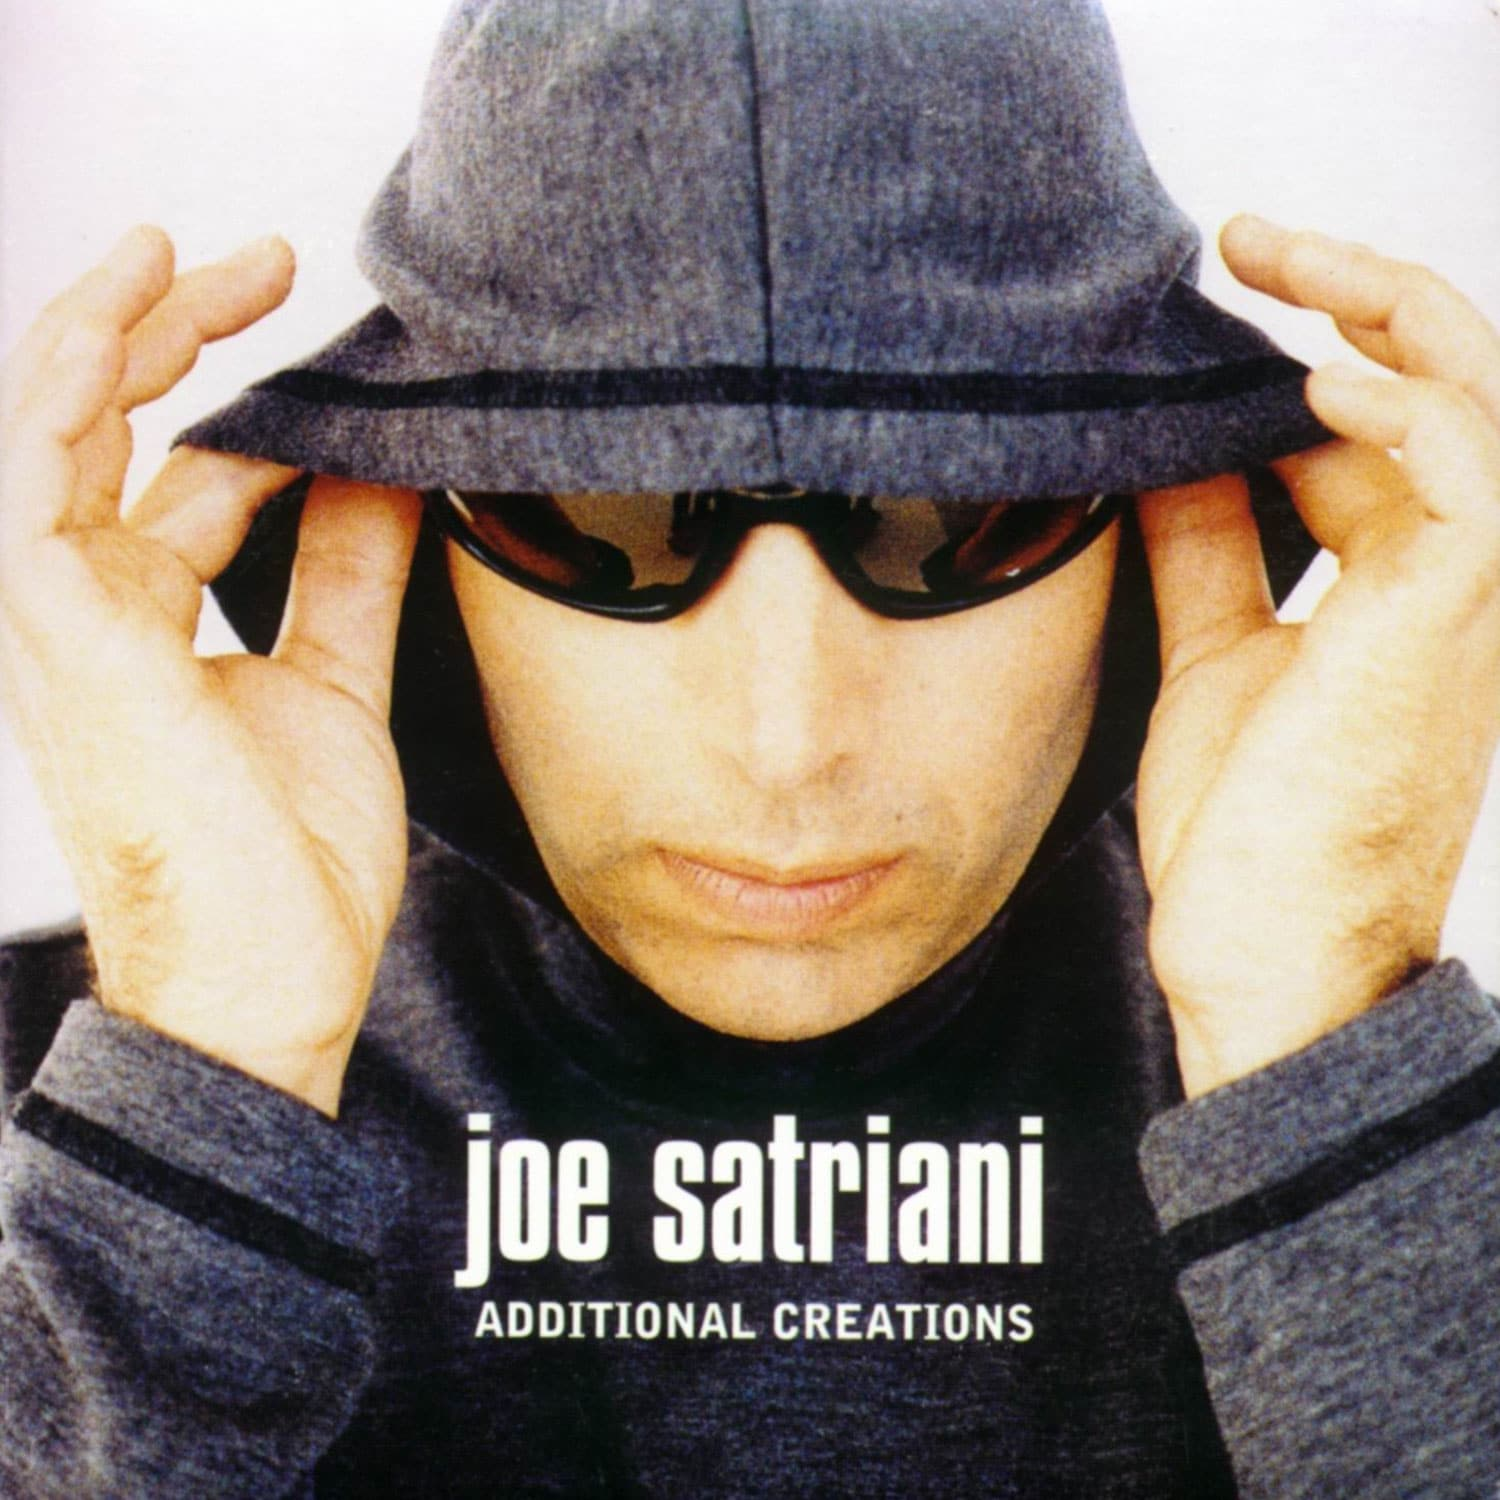 Joe Satriani Additional Creations 2000 EP